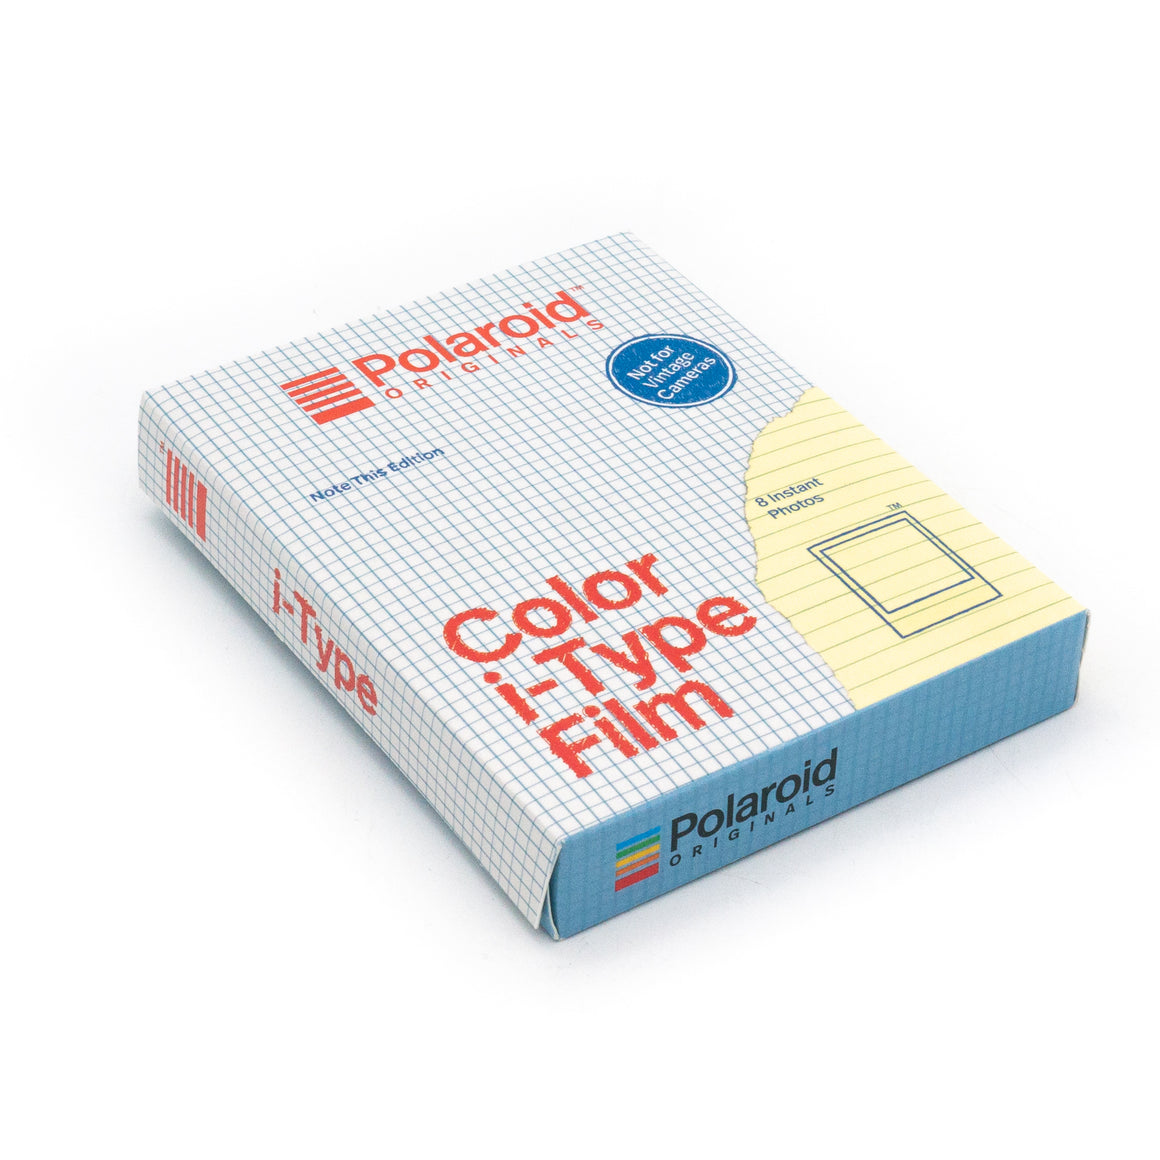 Polaroid Originals i-Type Colour Film - Note This Edition